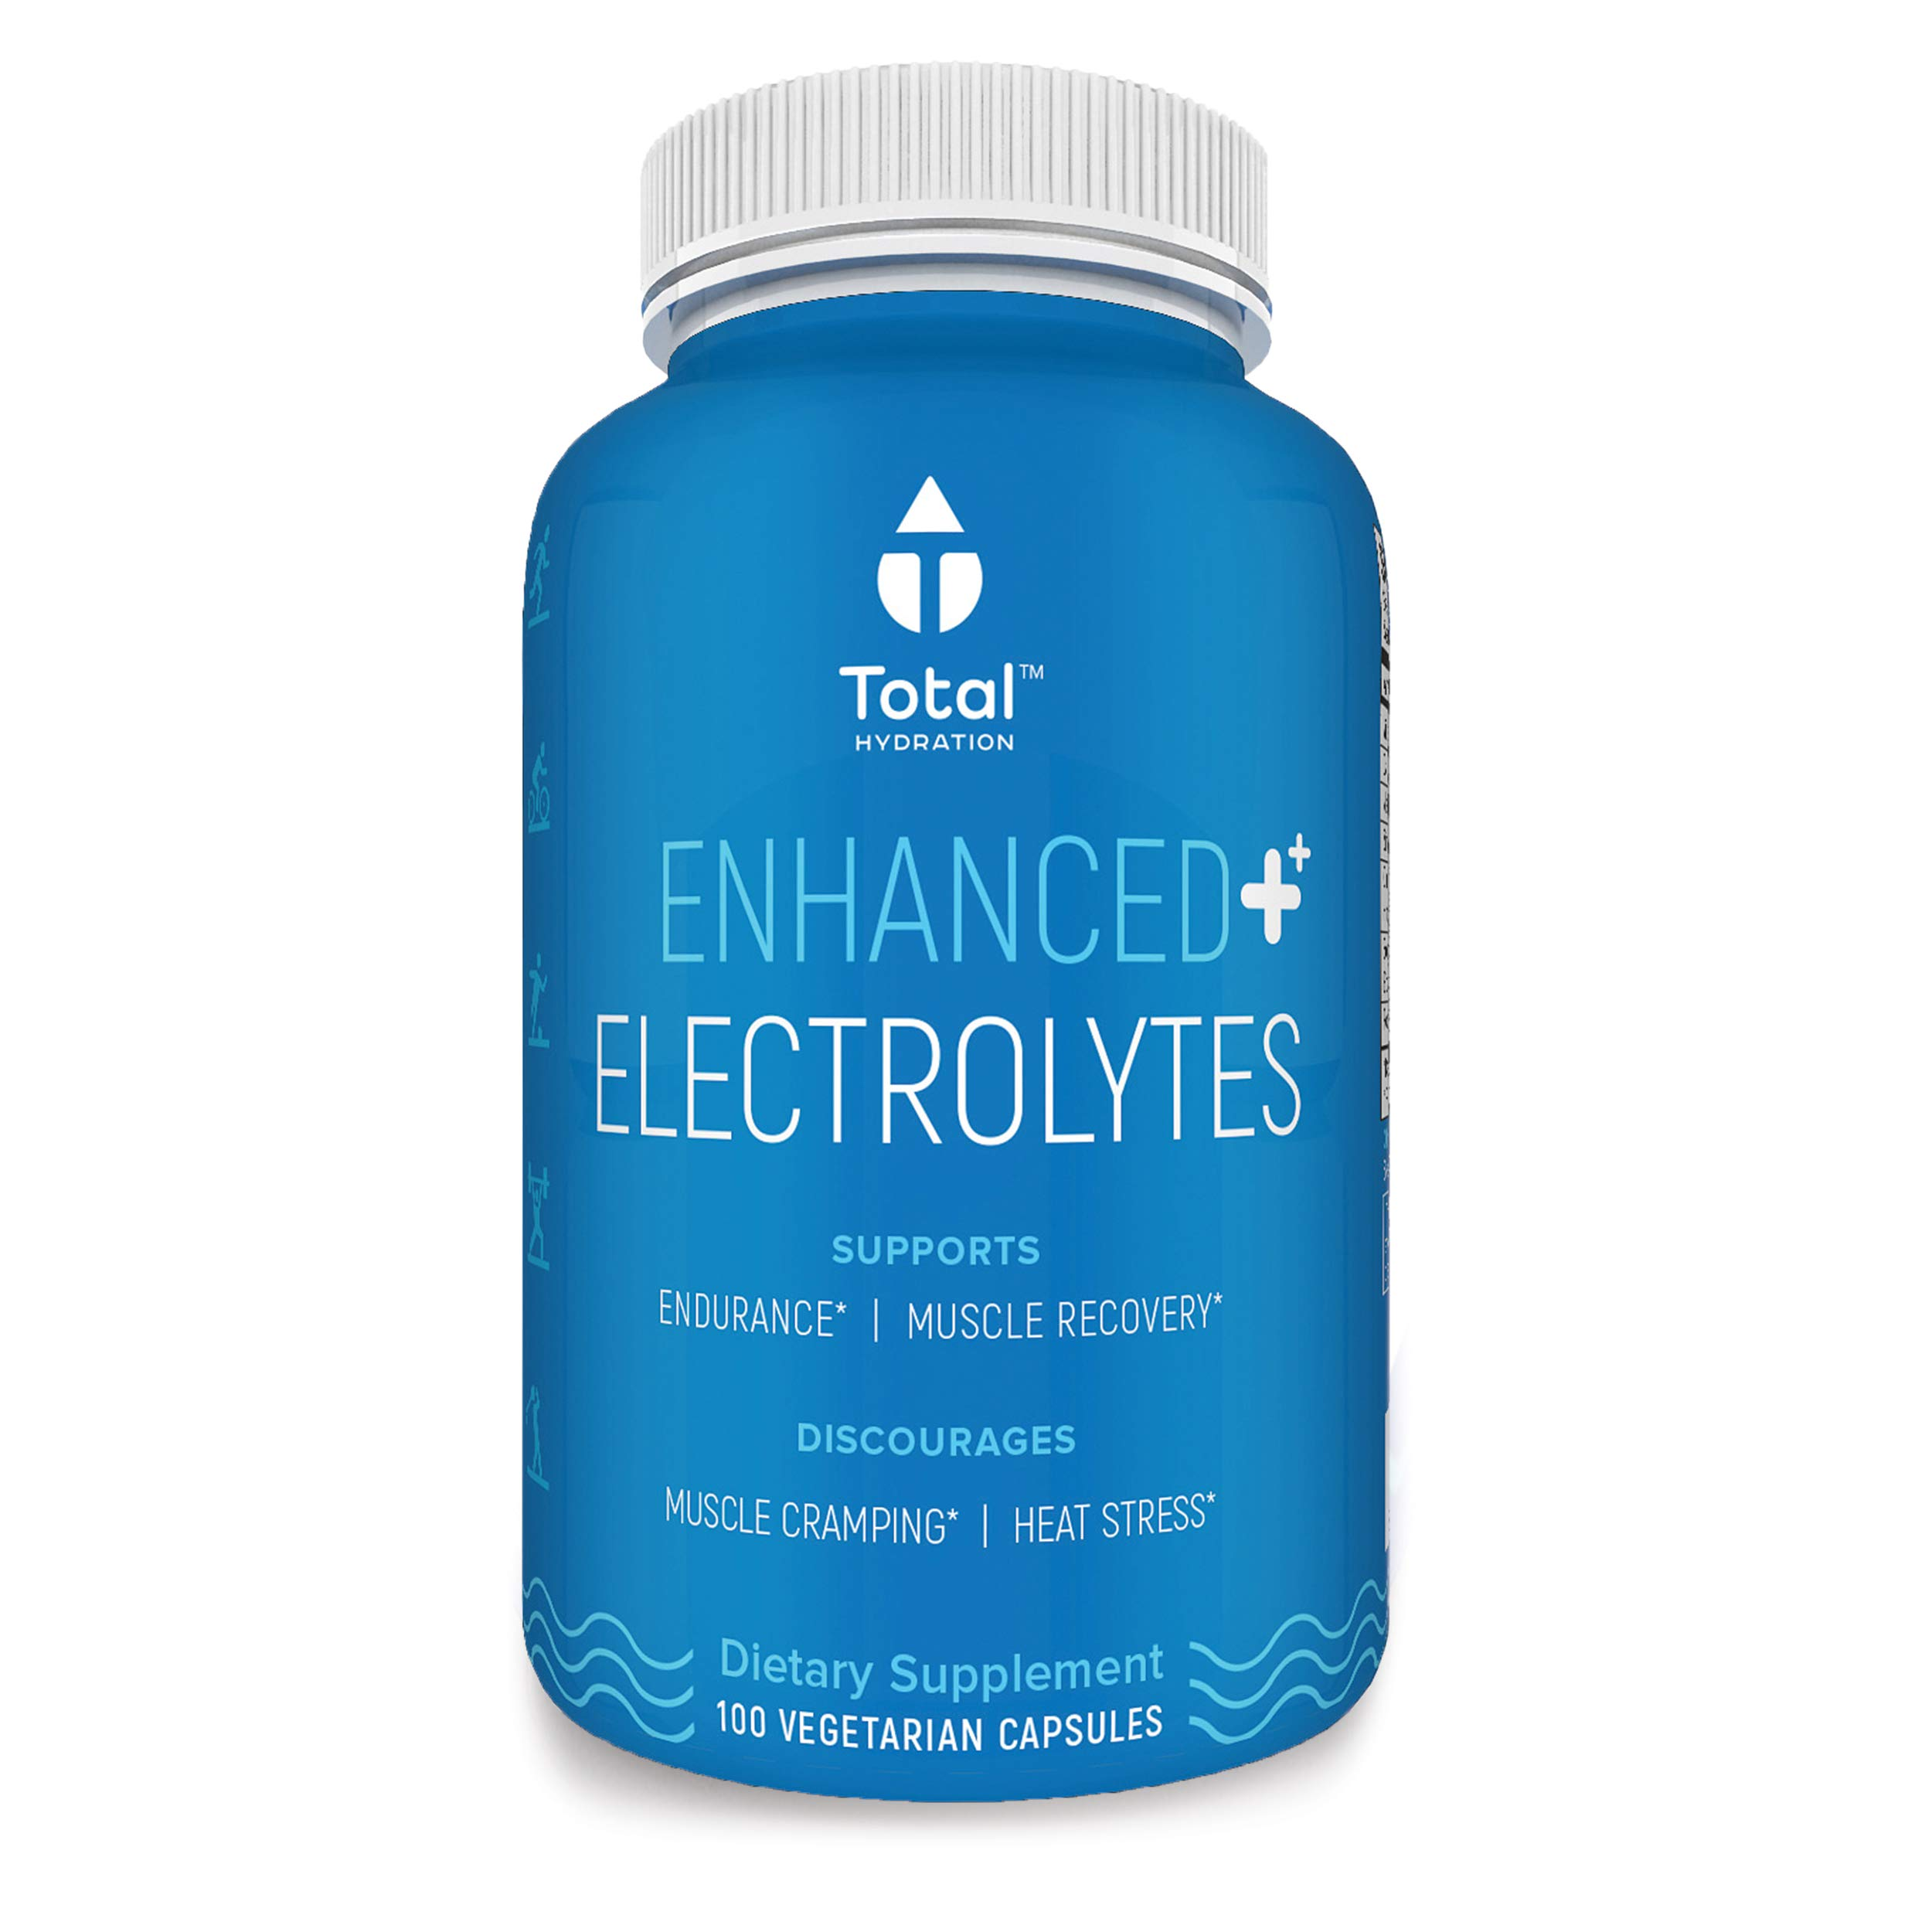 Electrolyte Capsules, Natural Replacement Rehydration Salts W/Magnesium, Zinc, Calcium & Sodium, Aids Rapid Rehydration & Recovery from Exercise While Preventing Cramps, 100 Hydration Tablets by Total Hydration